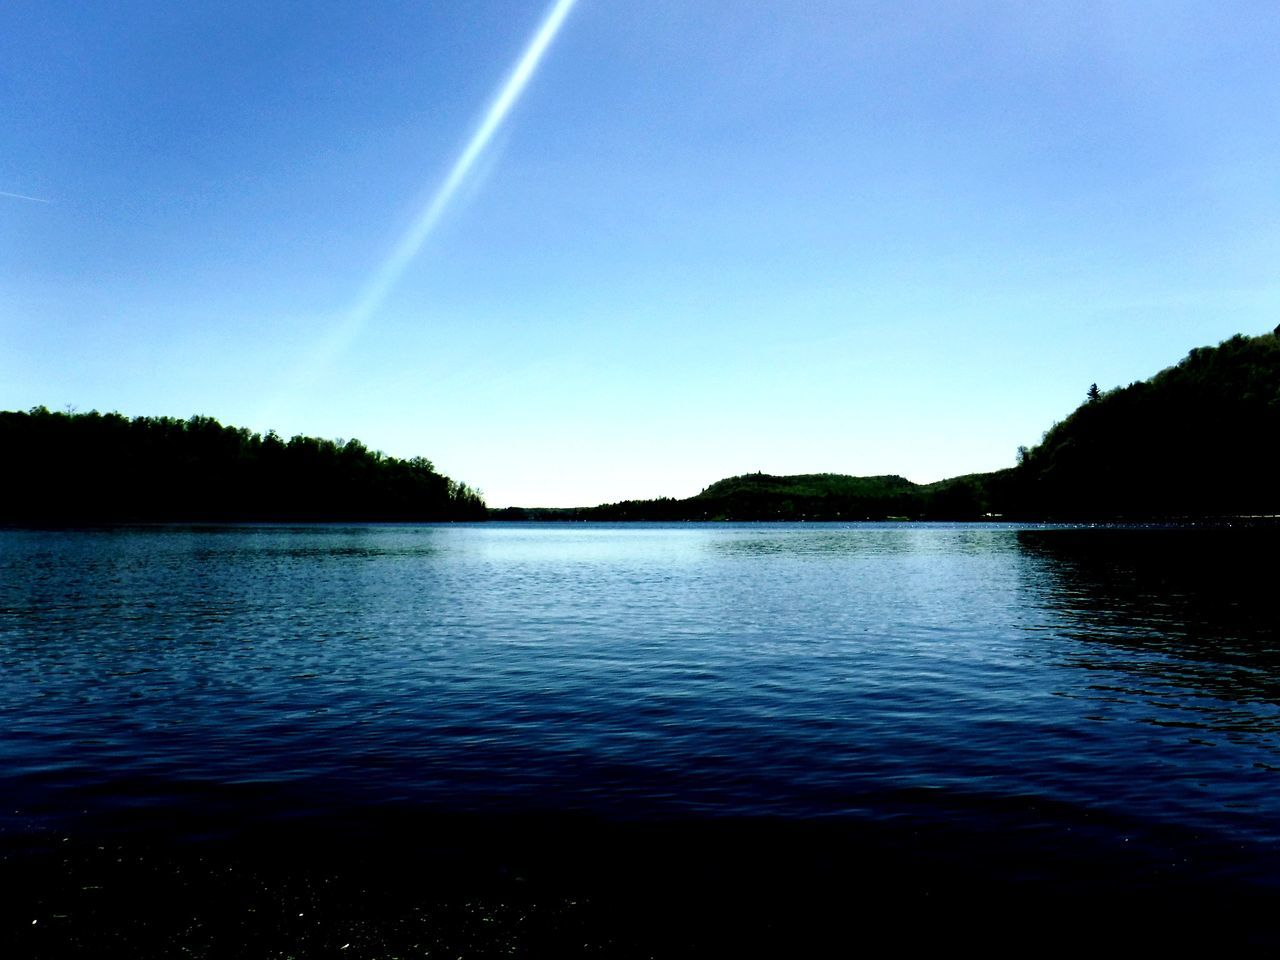 nature, beauty in nature, lake, water, tranquility, scenics, tranquil scene, silhouette, blue, outdoors, rippled, no people, clear sky, sky, tree, day